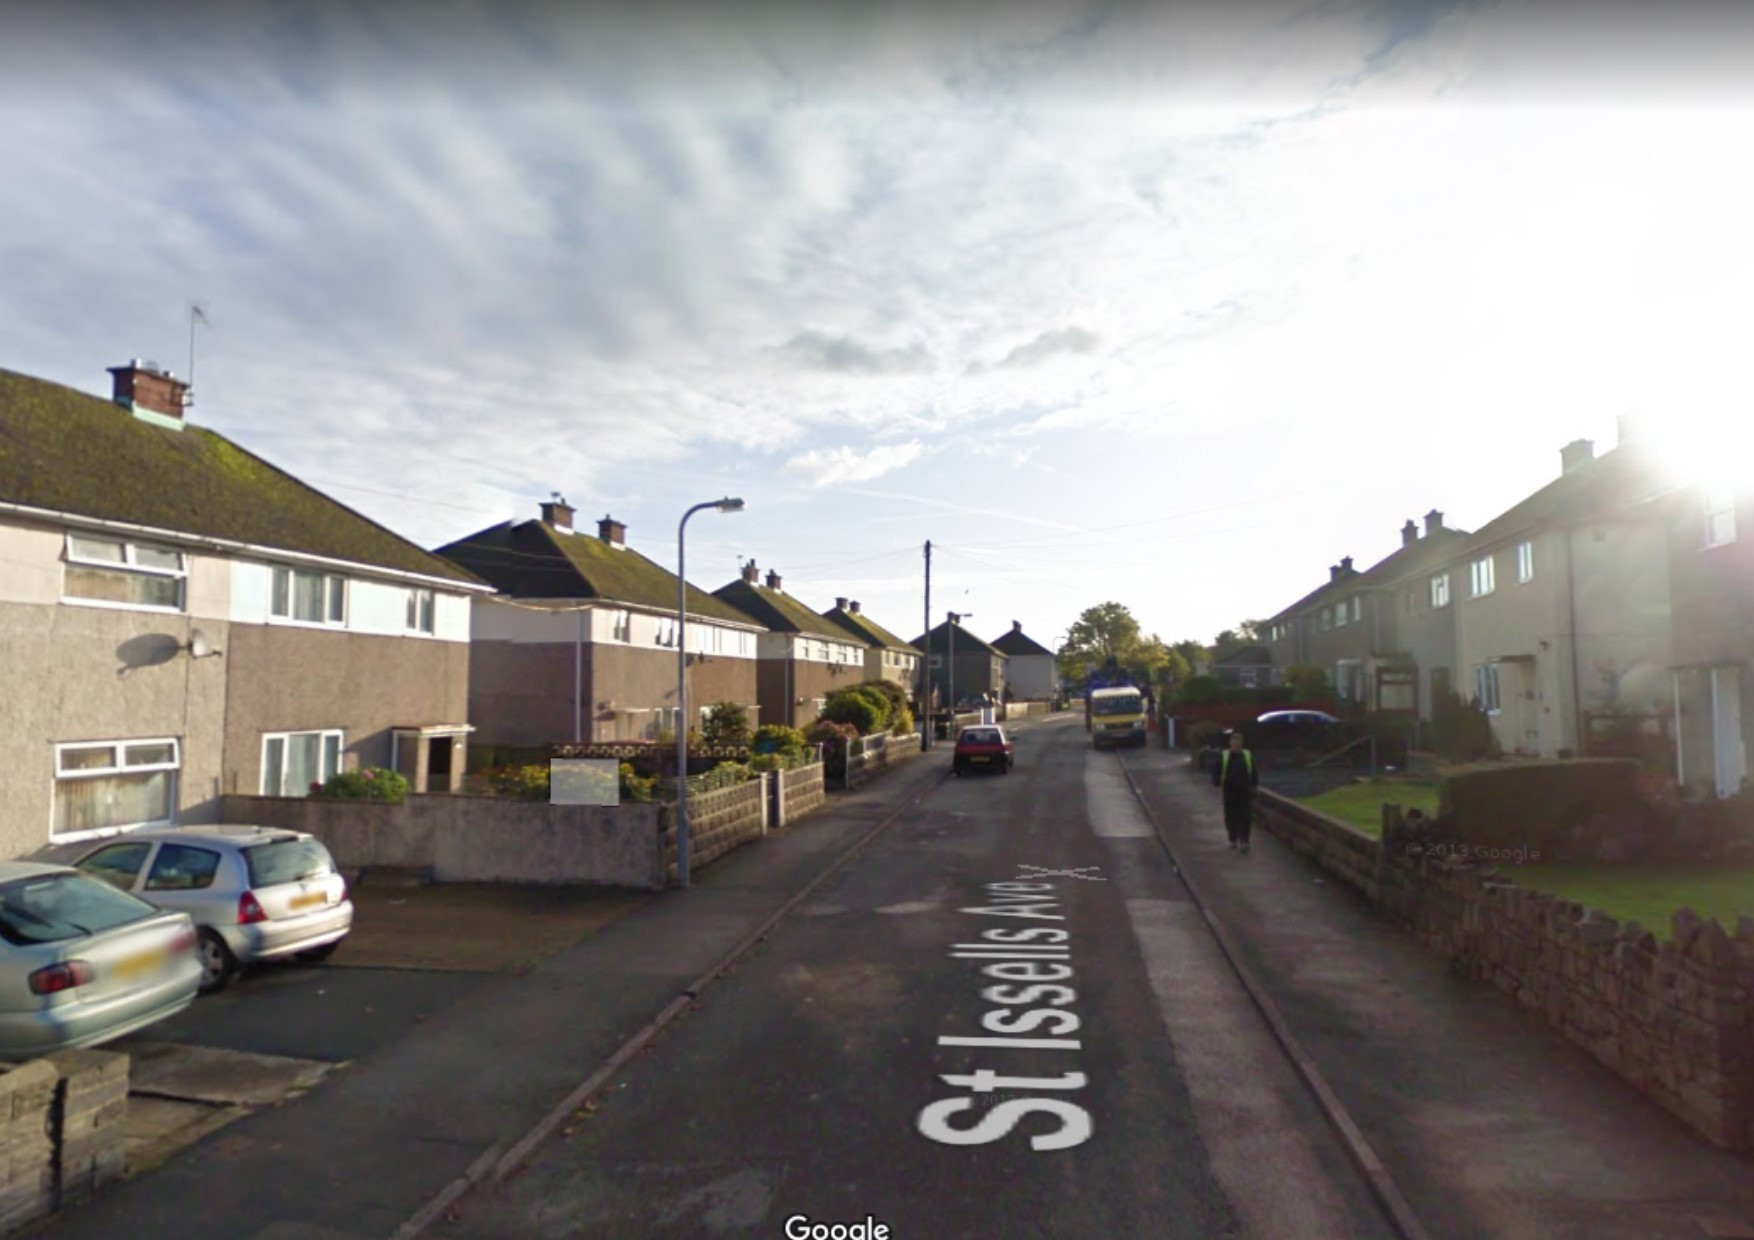 St Issell's Avenue, Merlin's Bridge. PICTURE: Google Street View